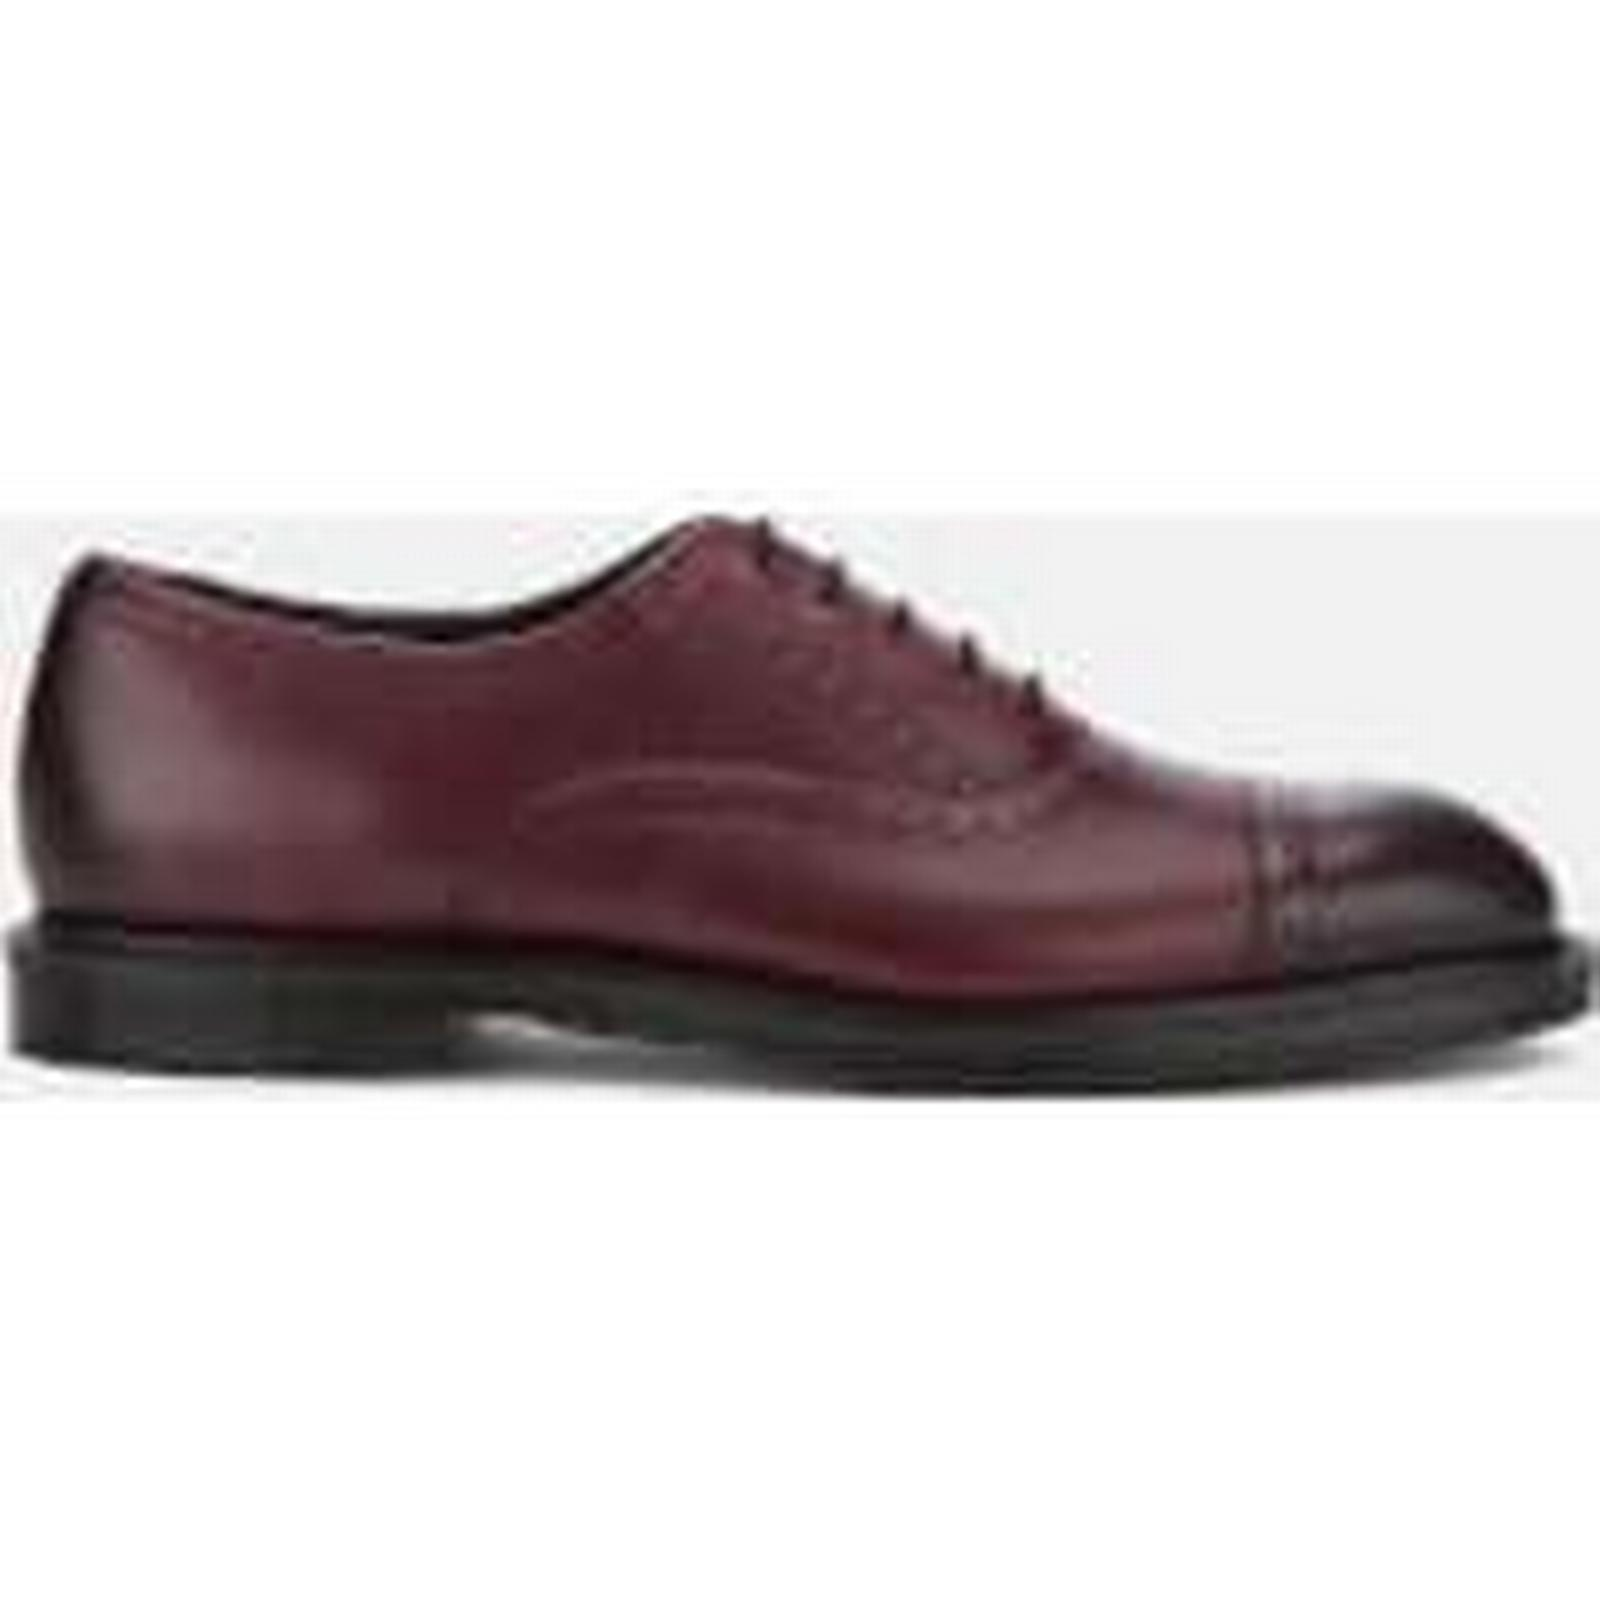 Dr. Martens Men's - Morris Antique Temperley Brogues - Men's Cherry Red - UK 12 - Burgundy 634ec2